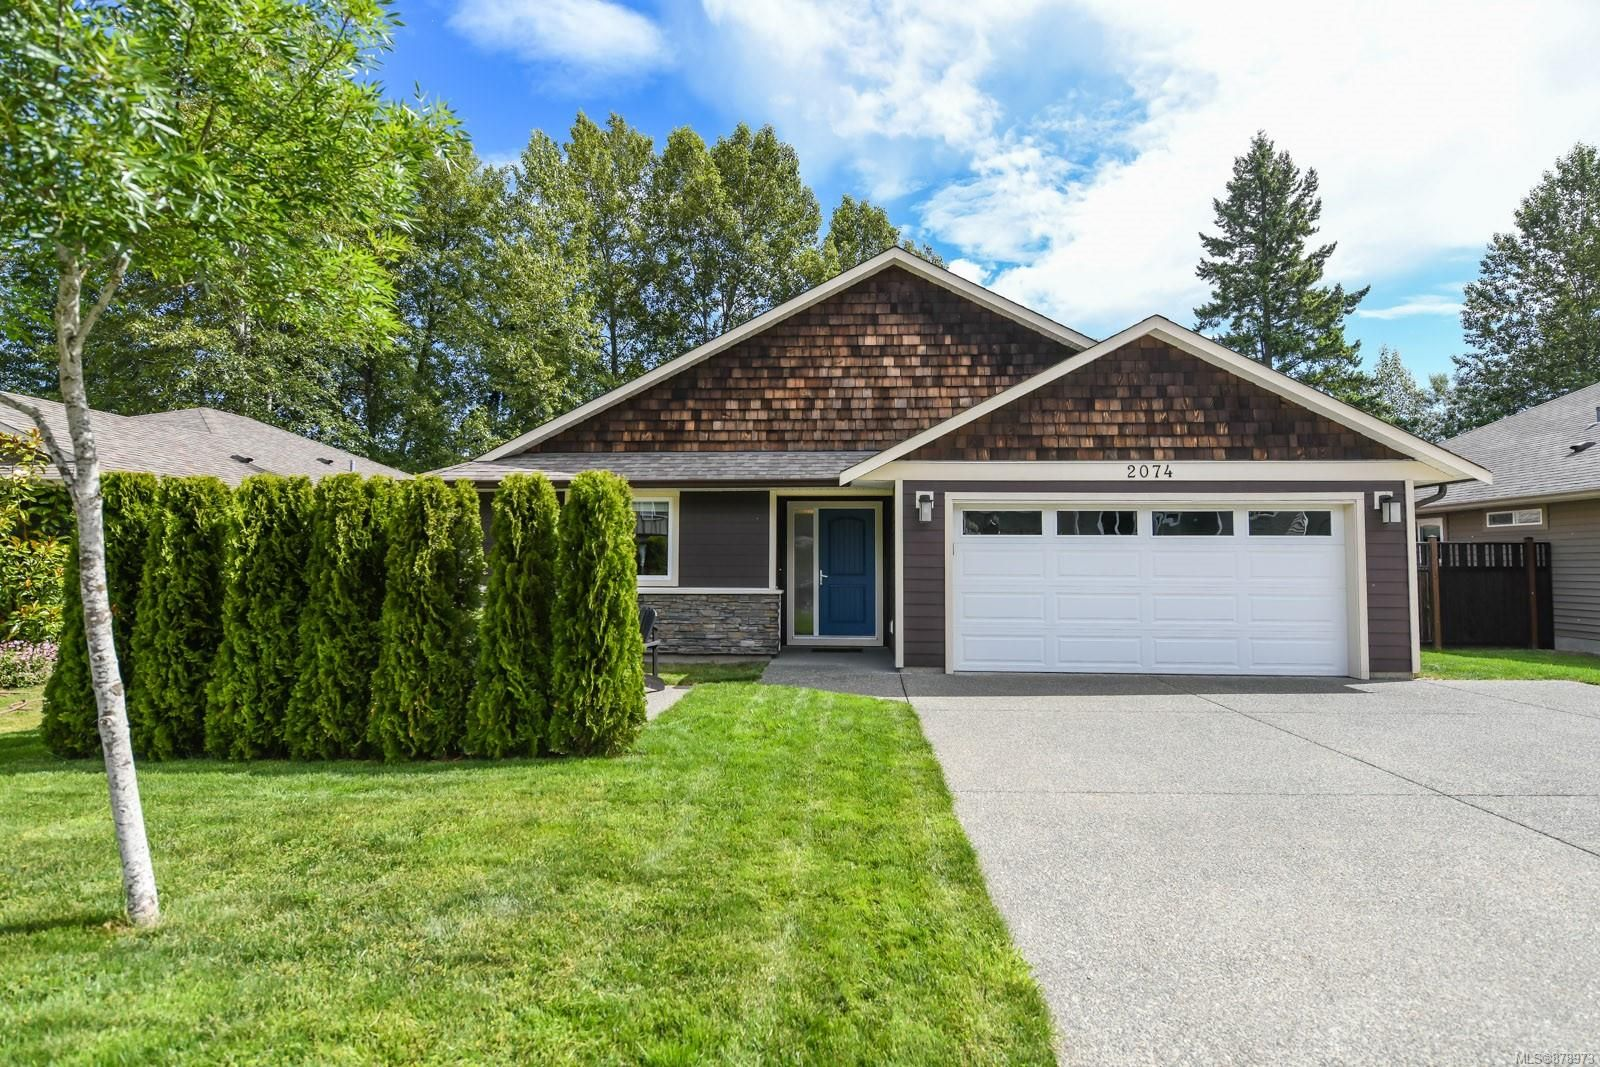 Main Photo: 2074 Lambert Dr in : CV Courtenay City House for sale (Comox Valley)  : MLS®# 878973